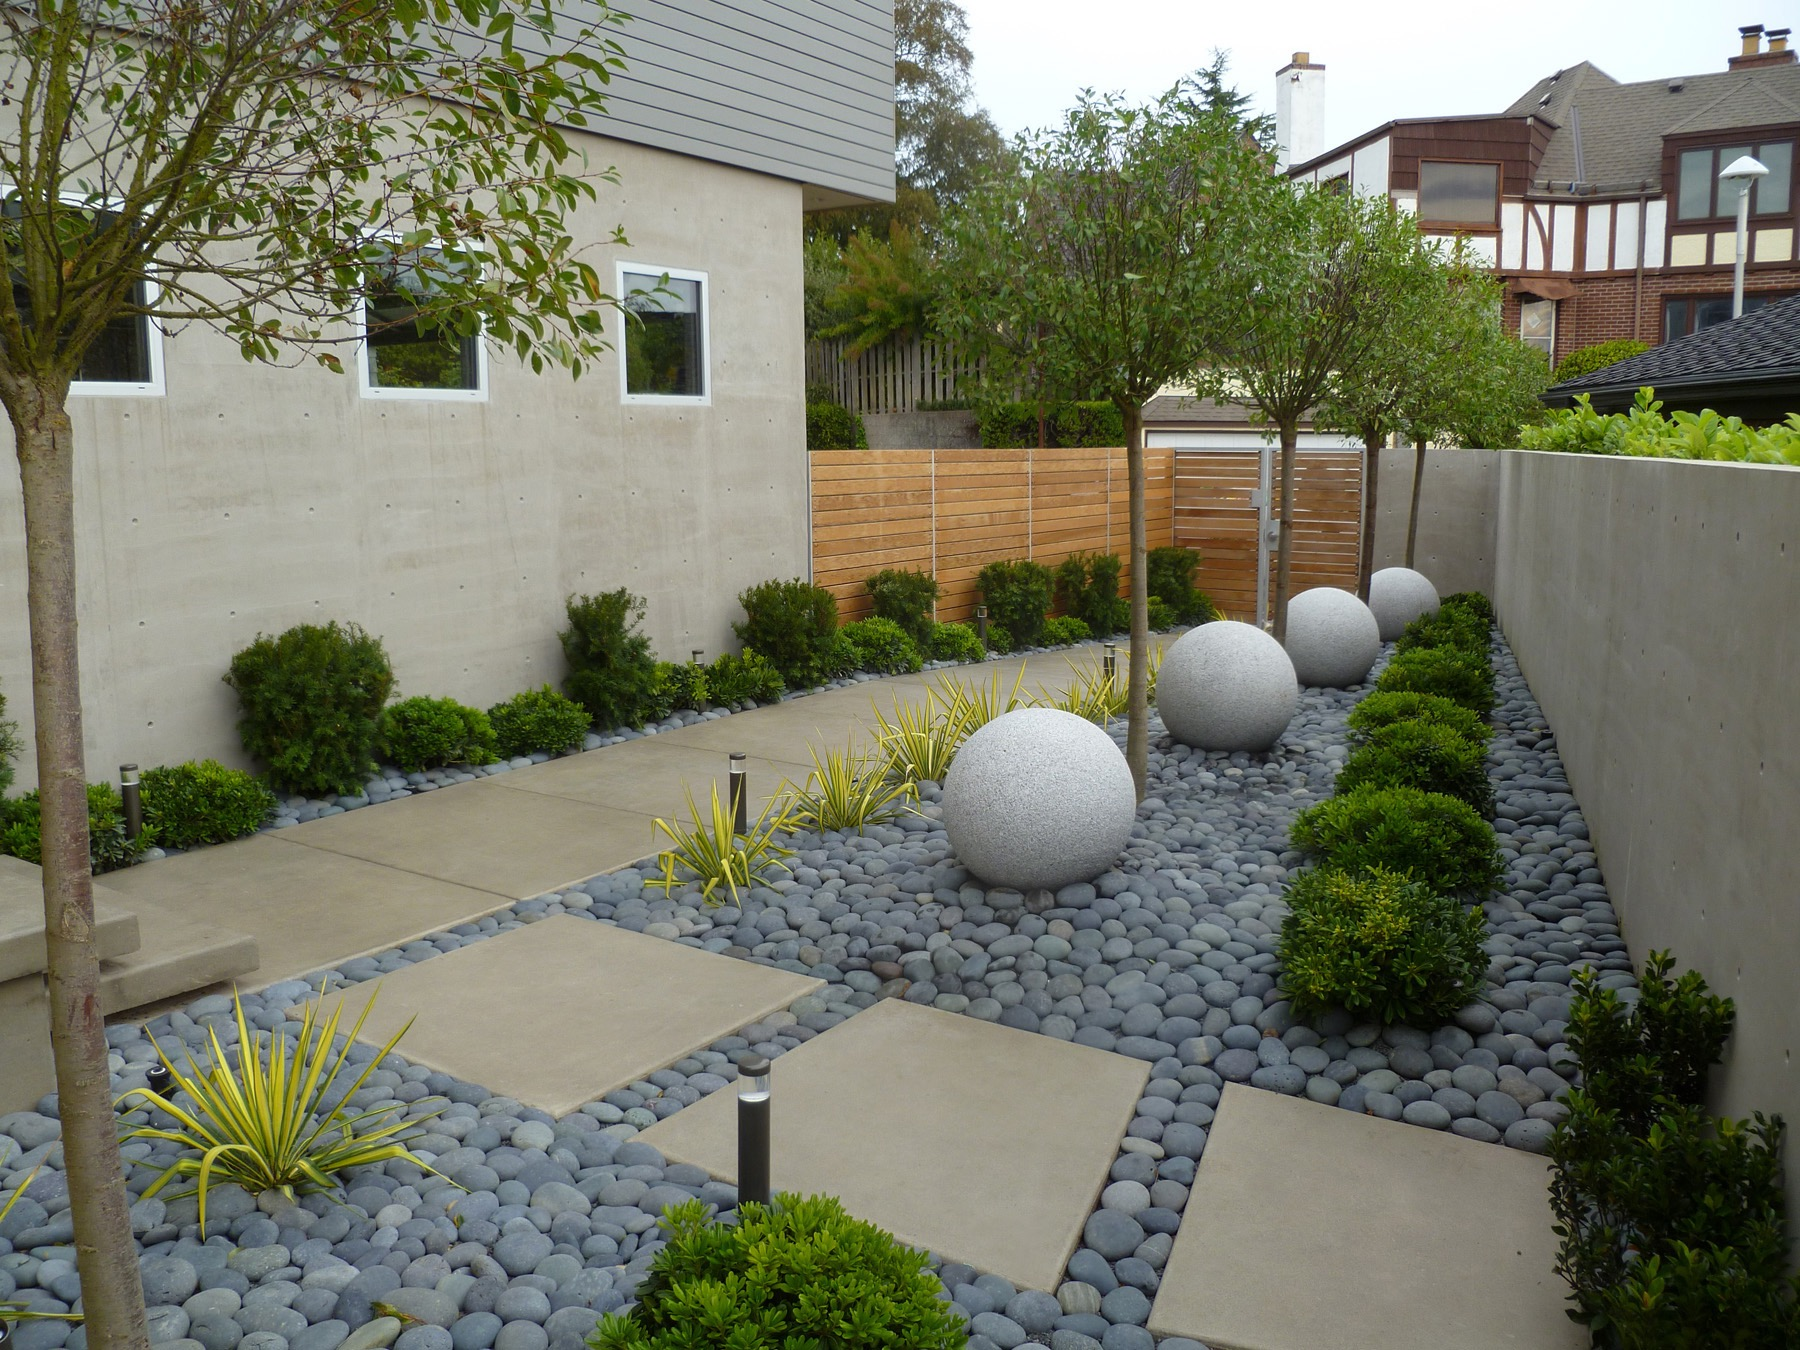 Contemporary Garden Landscape Boasts River Rock And Granite Orbs (Image 9 of 35)